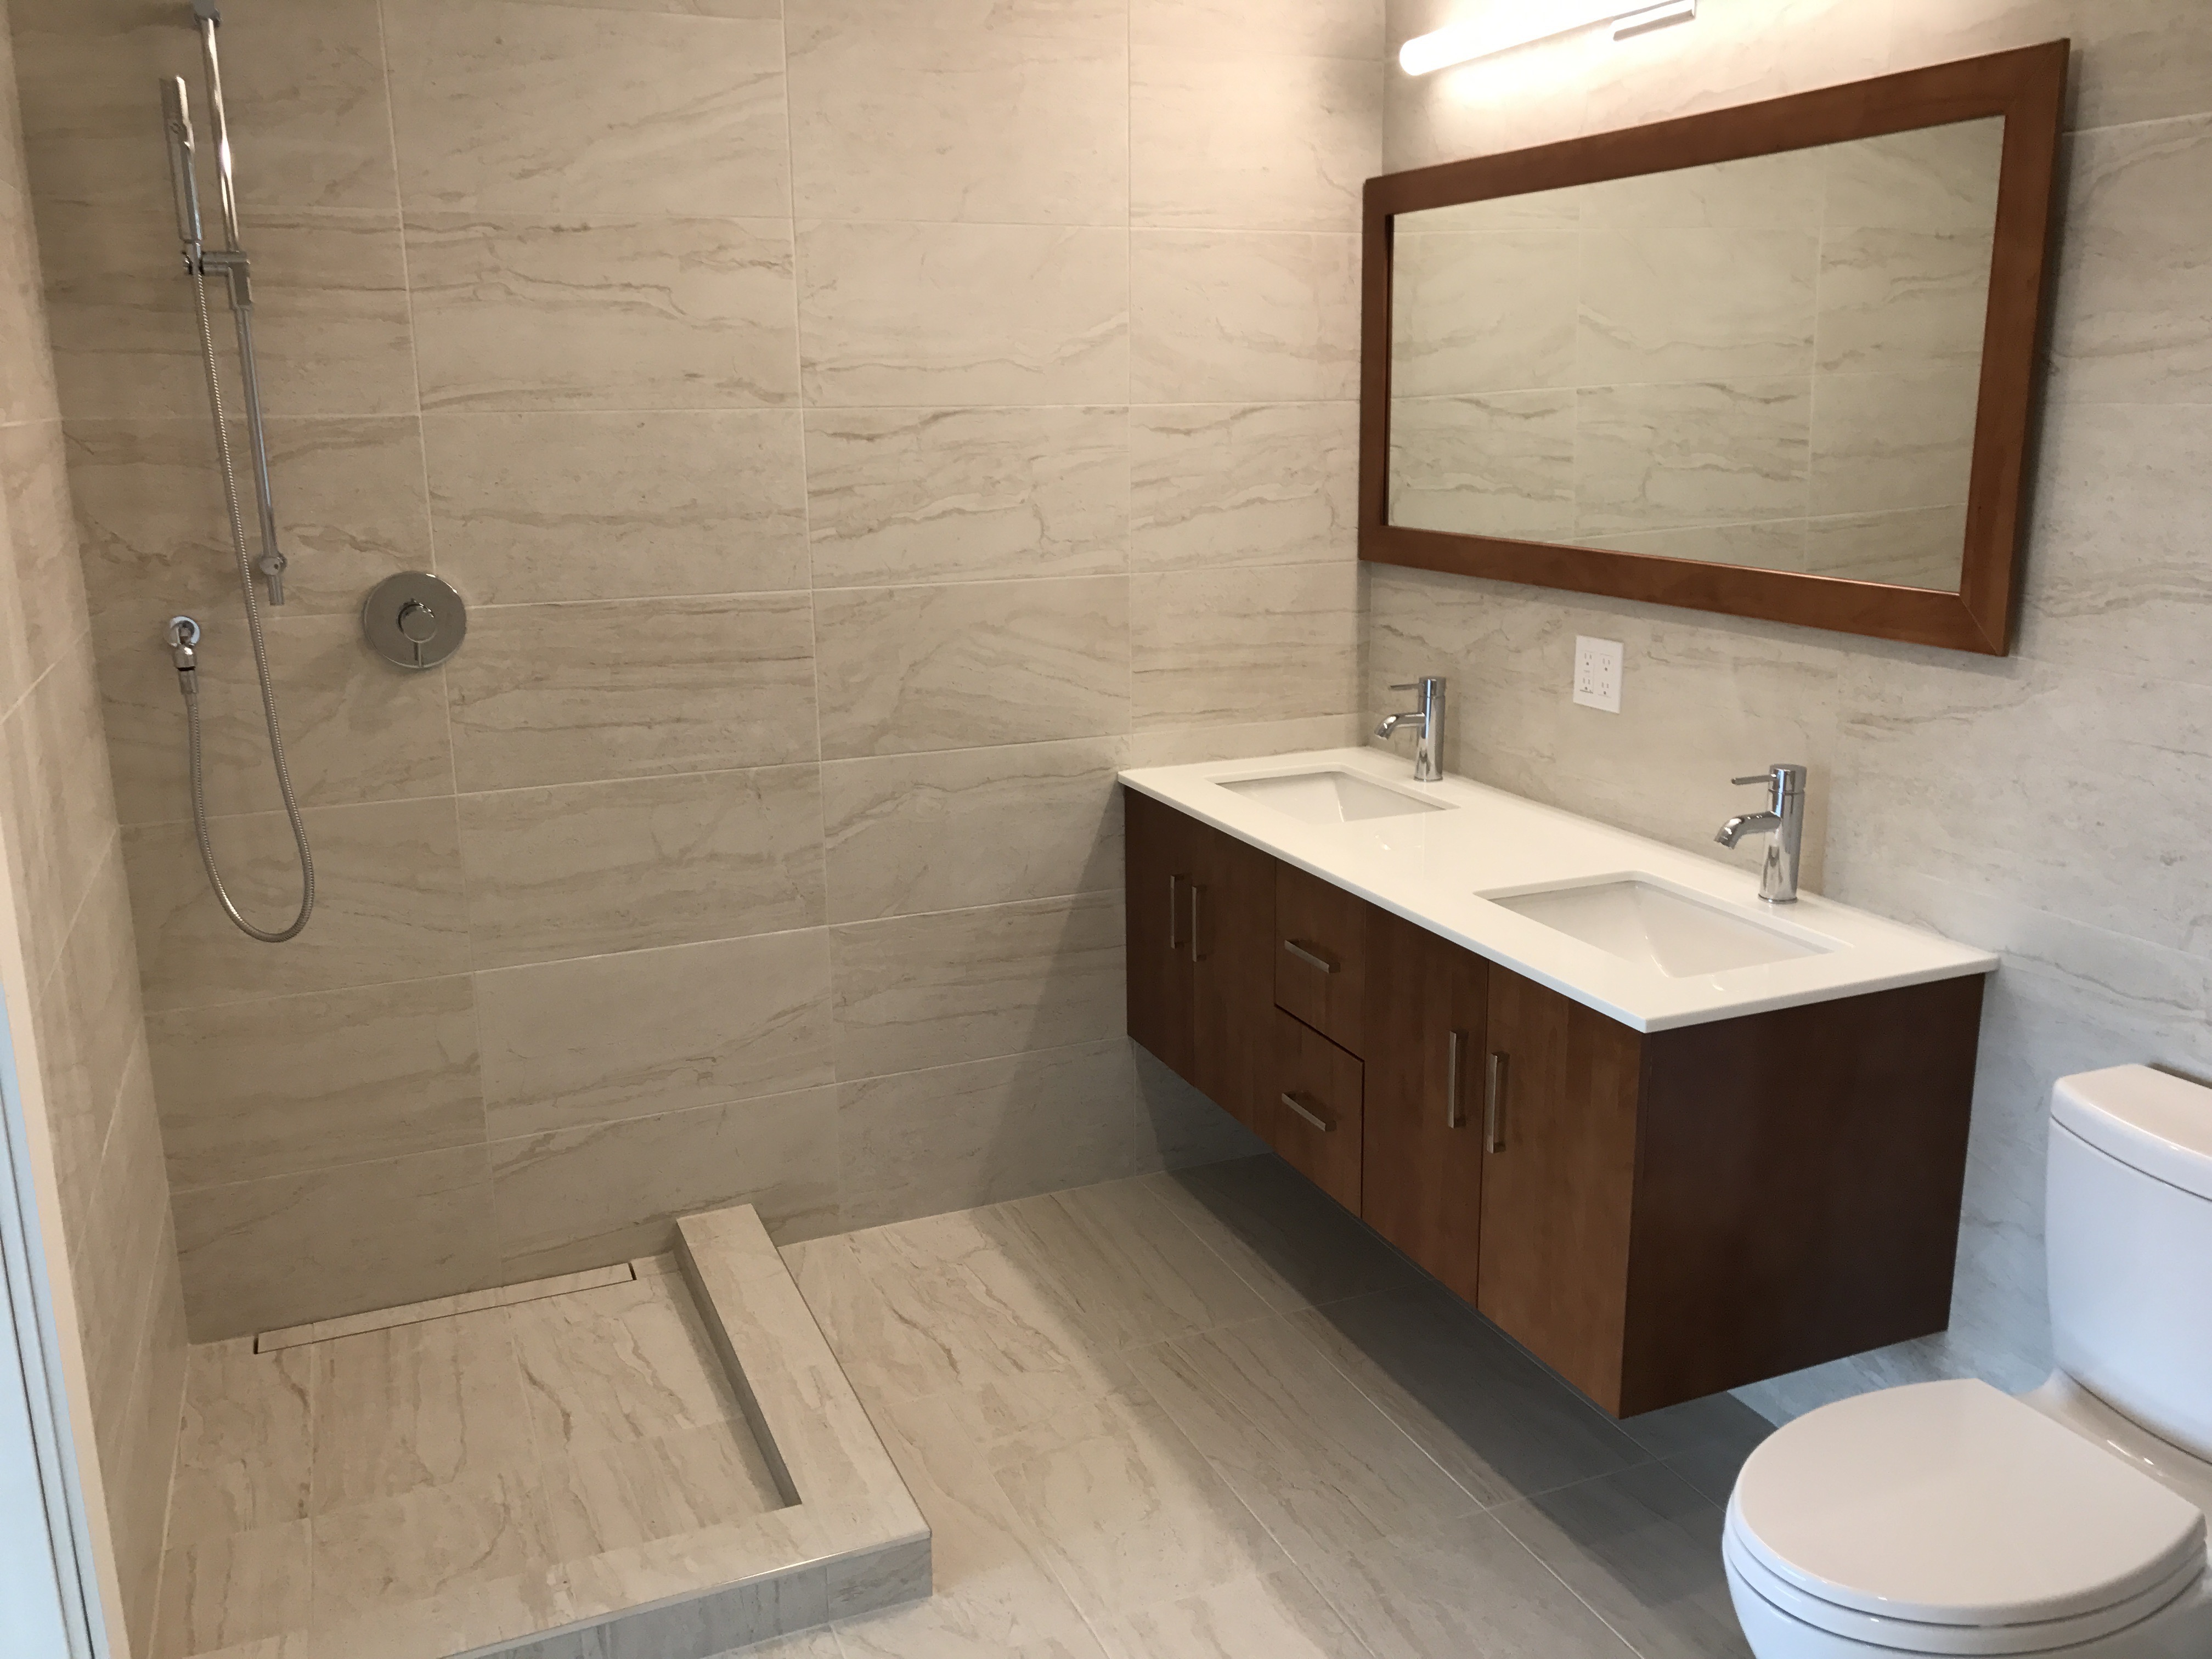 Double Bathroom Vanity and Linear Shower Drain